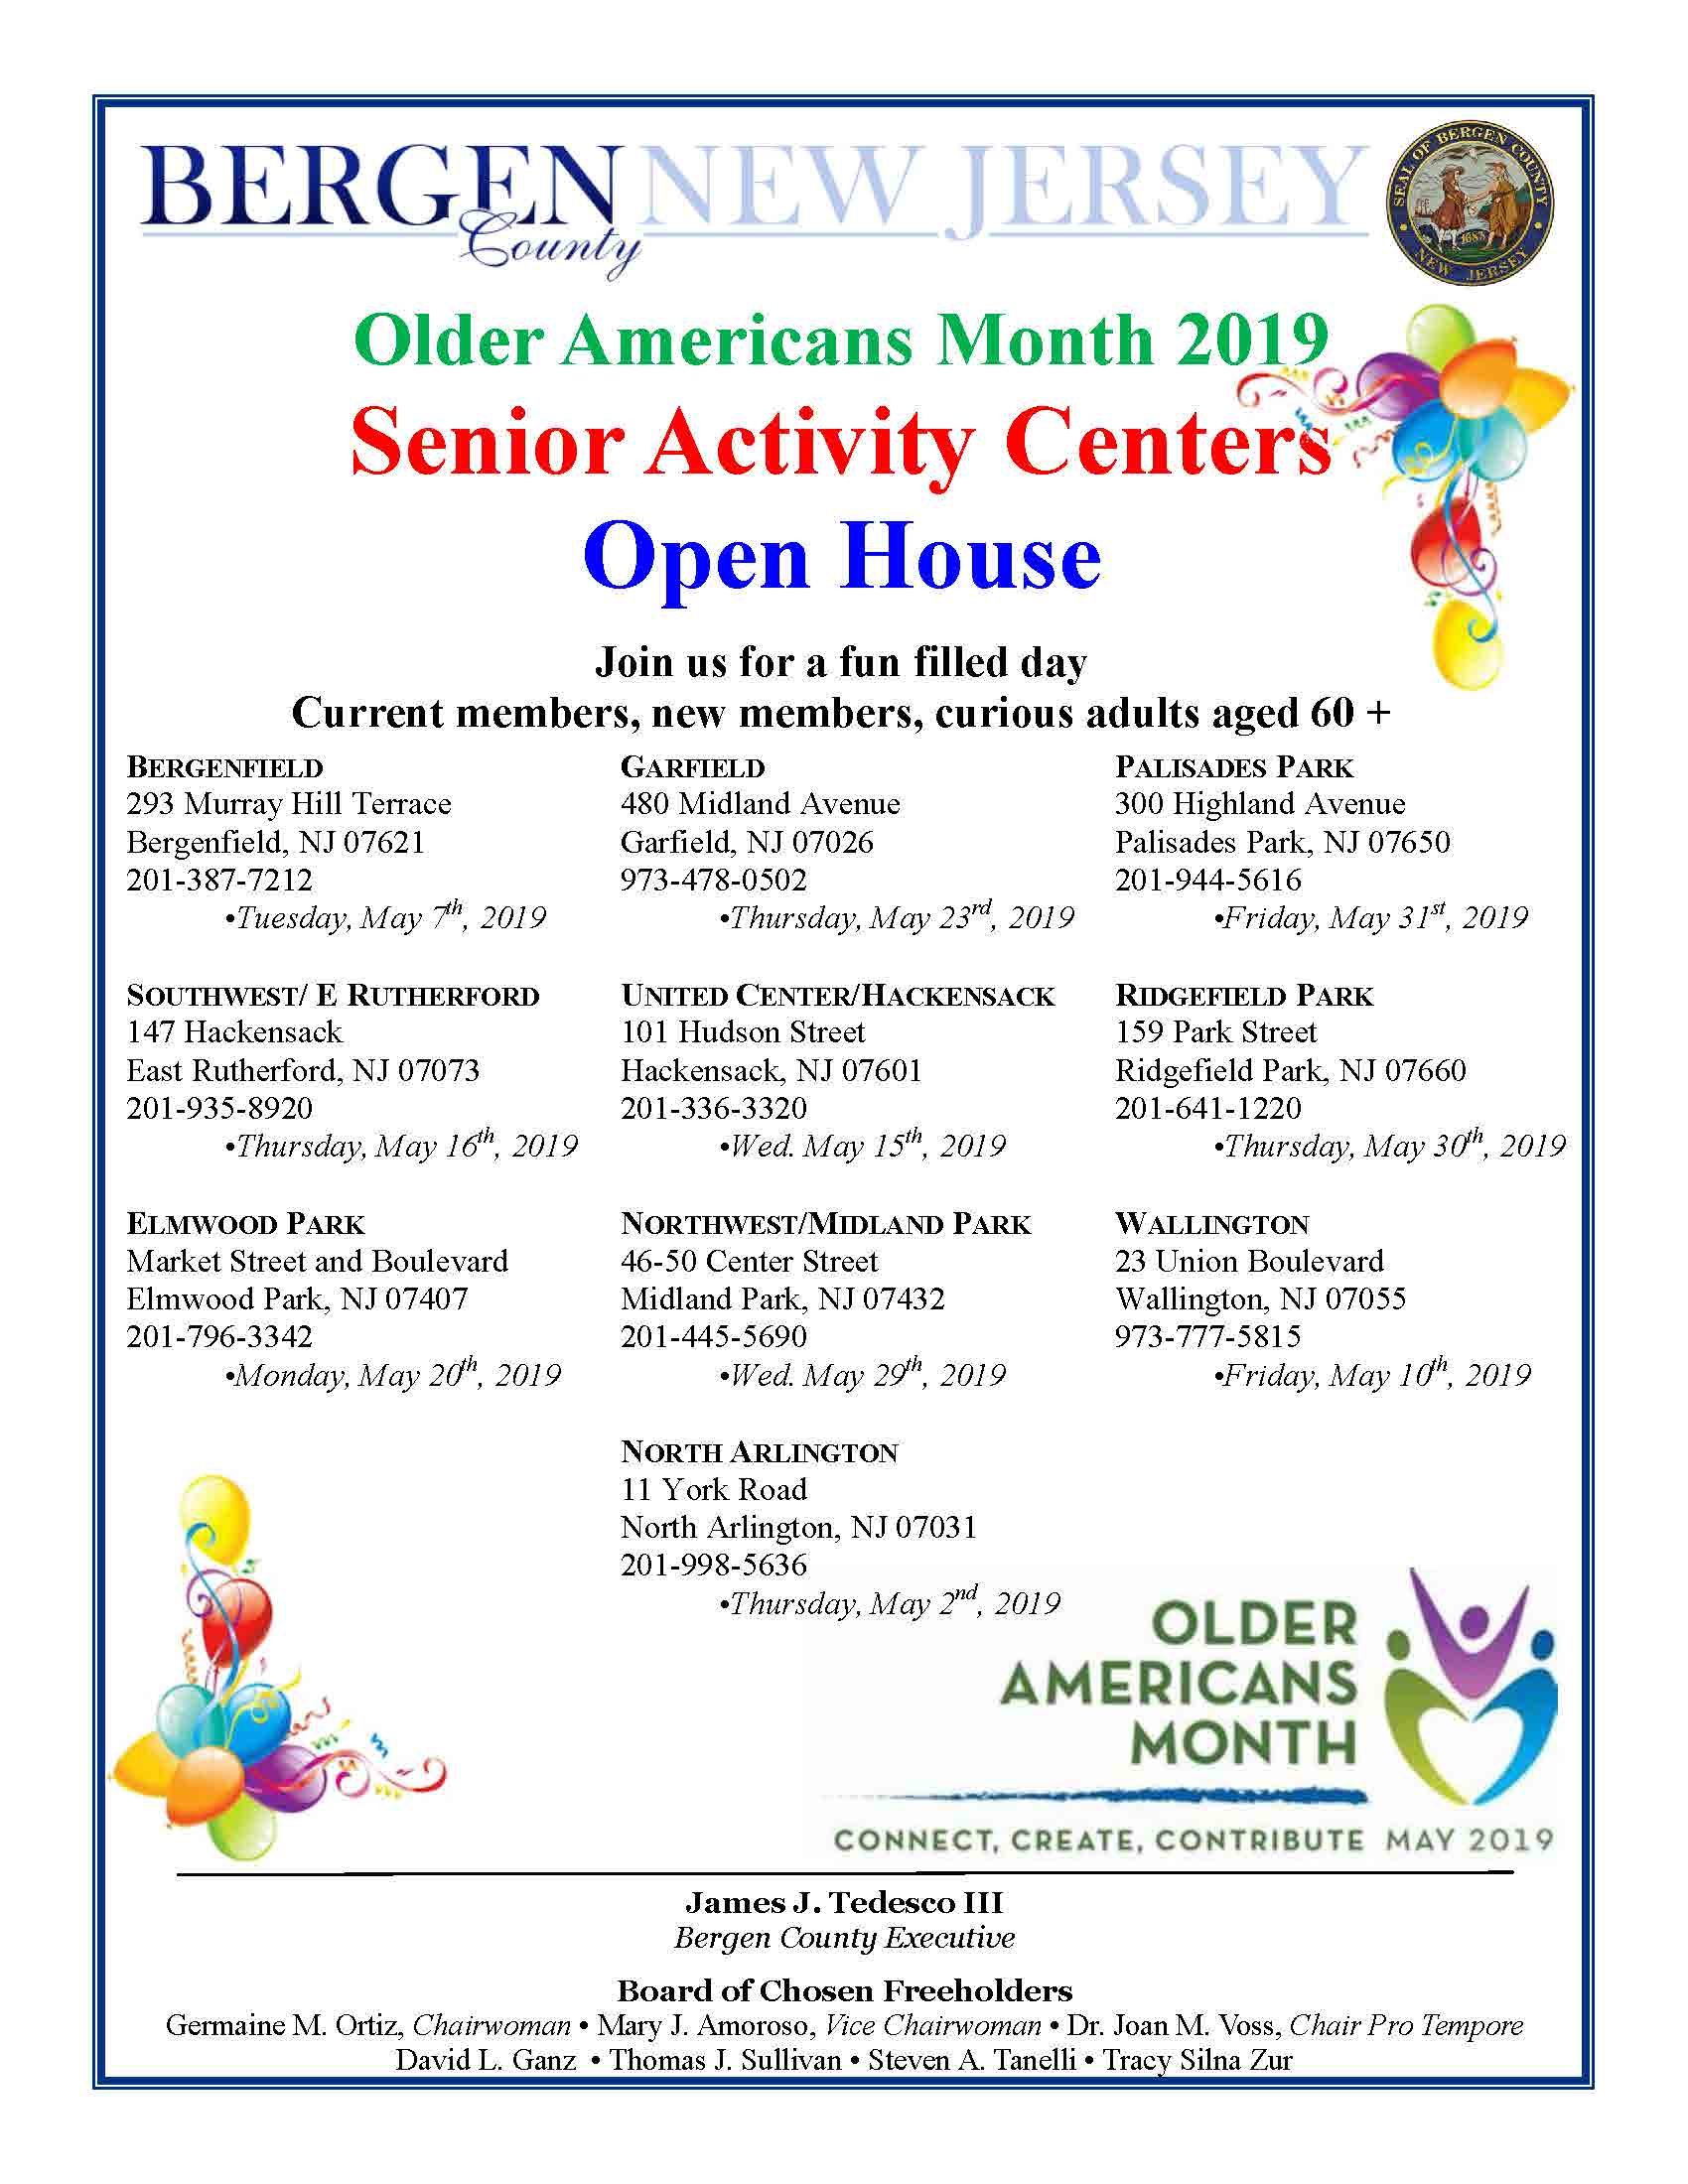 Older Americans Month Open Houses Page 2